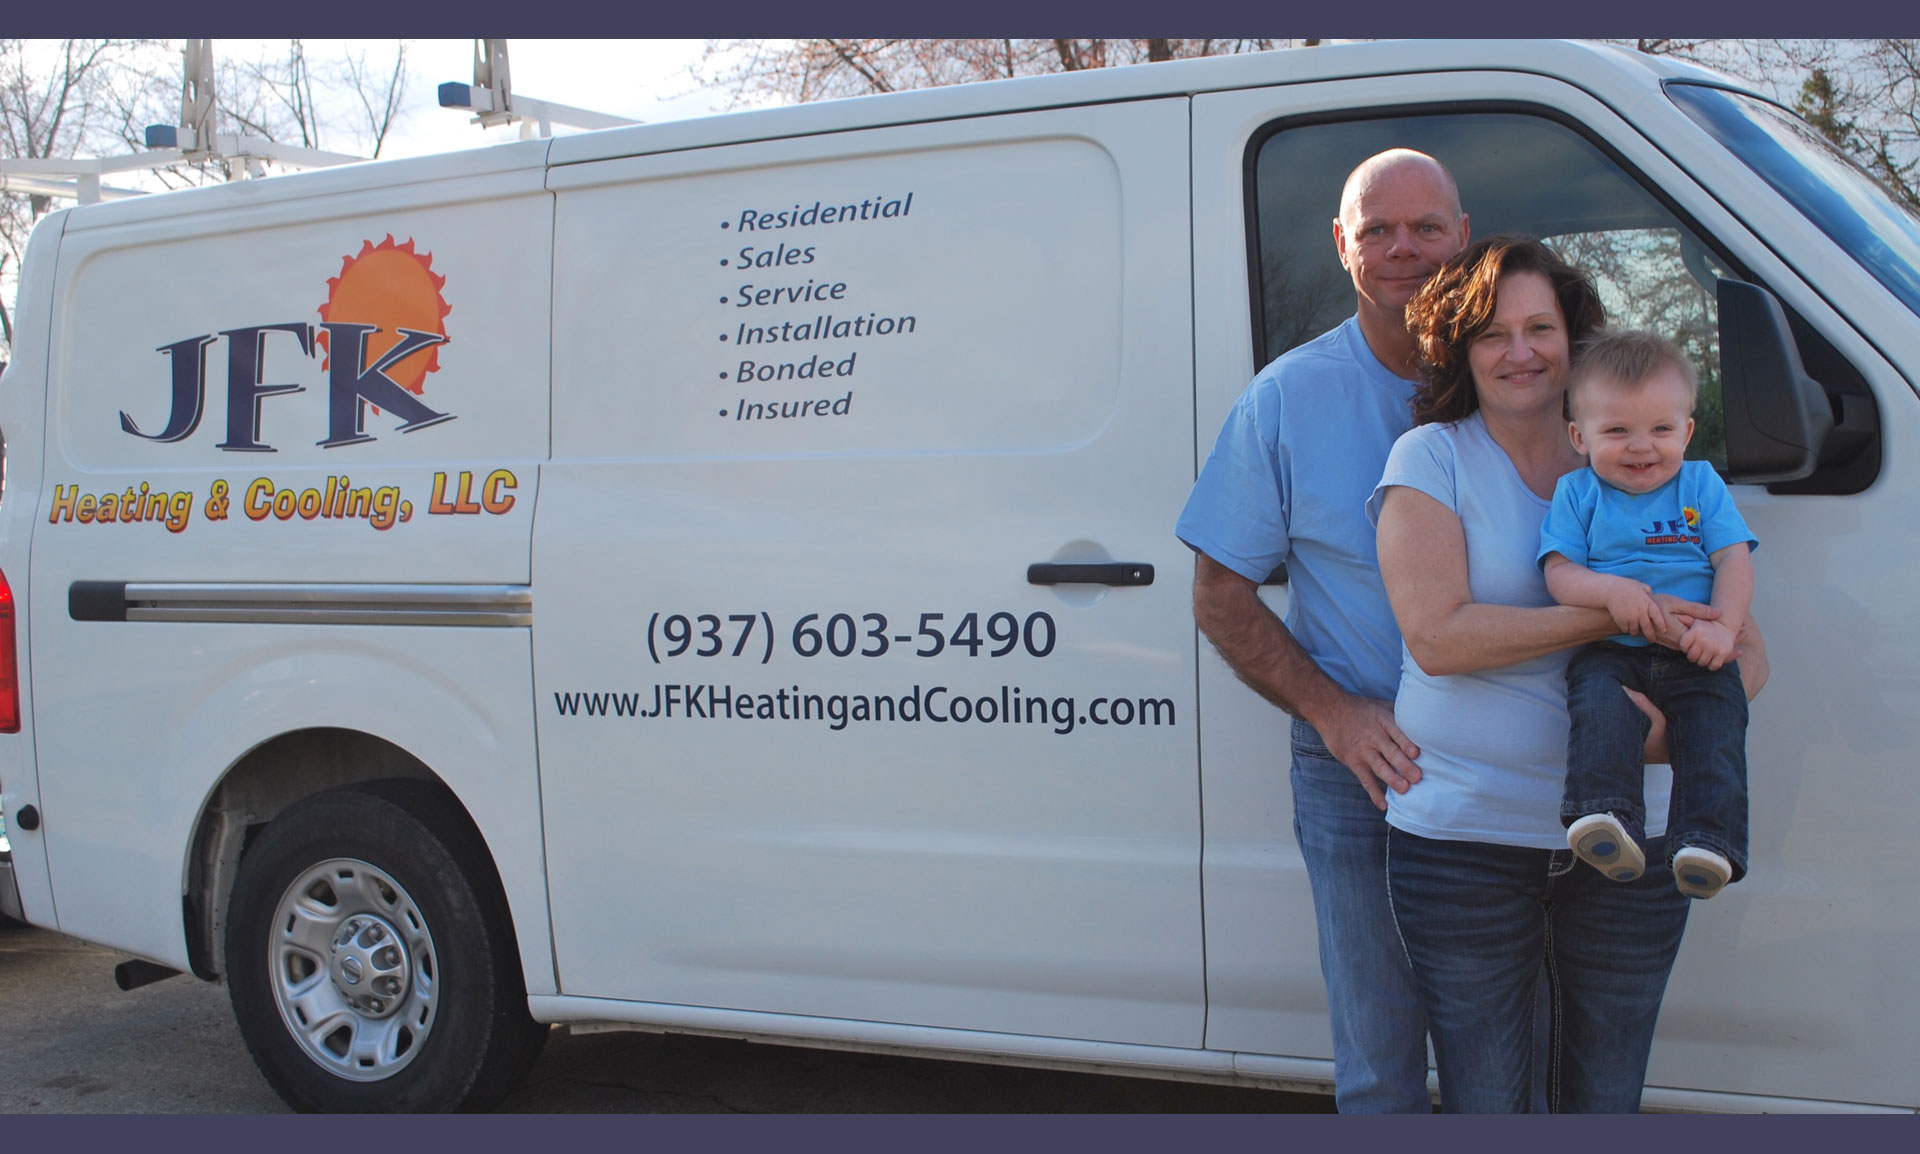 Jfk Heating And Cooling Llc Air Conditioner Furnace Repair